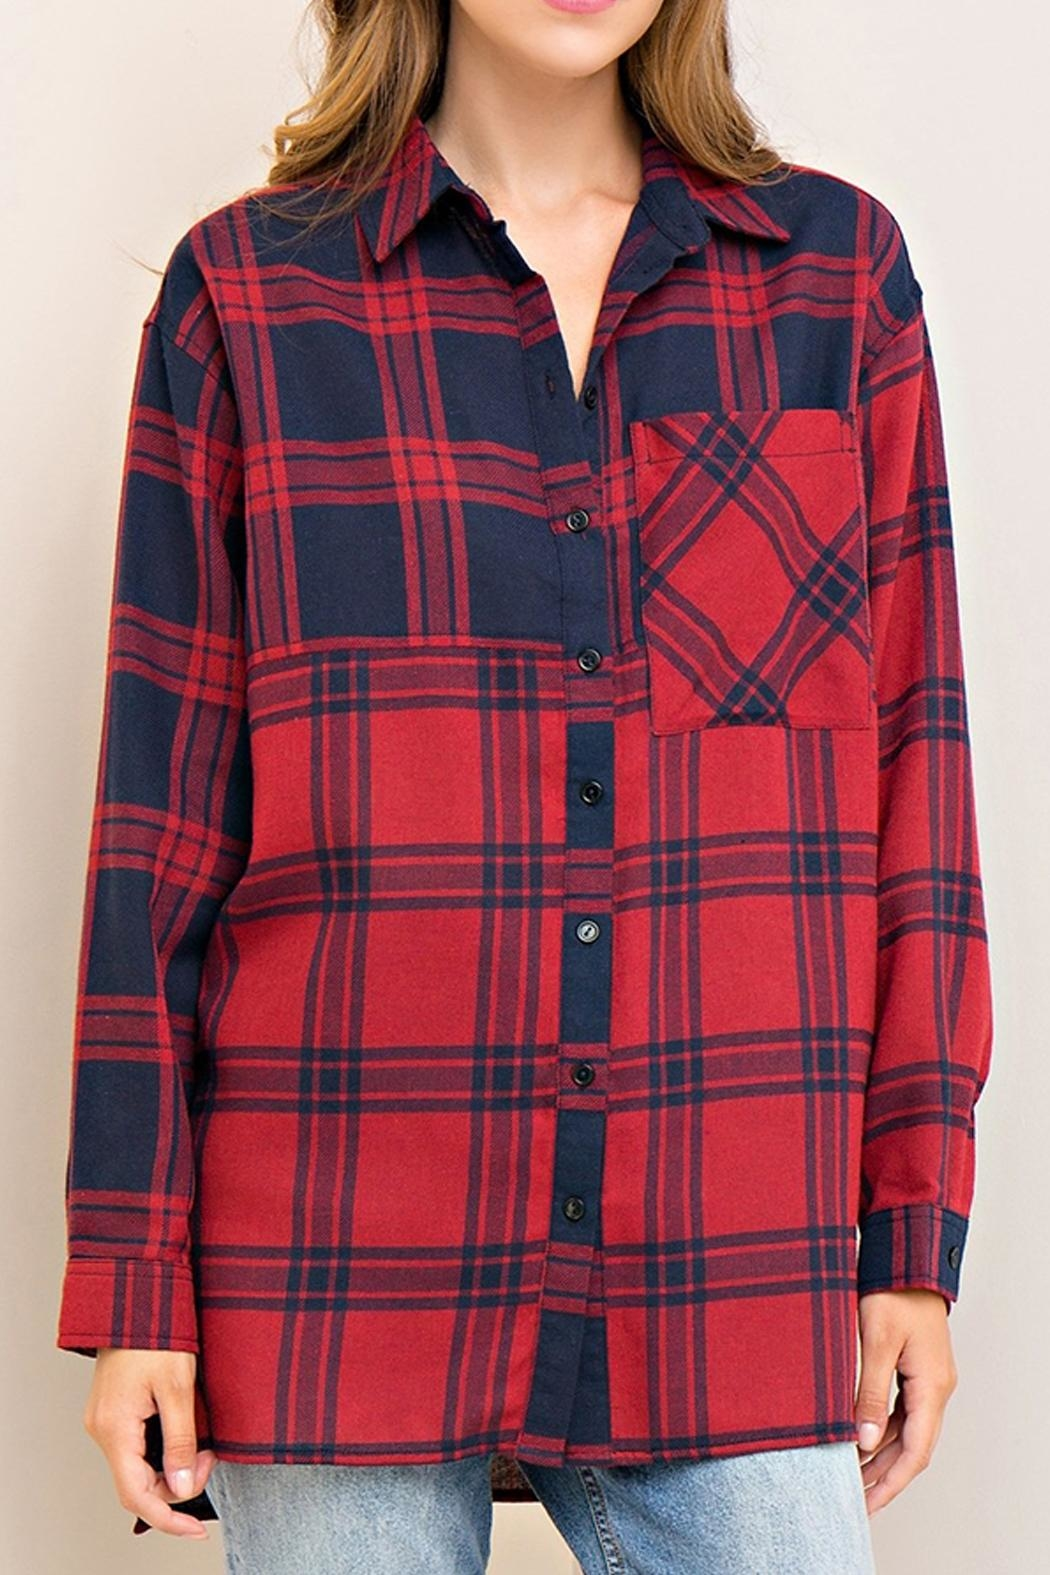 Entro Plaid Button Down Top - Main Image